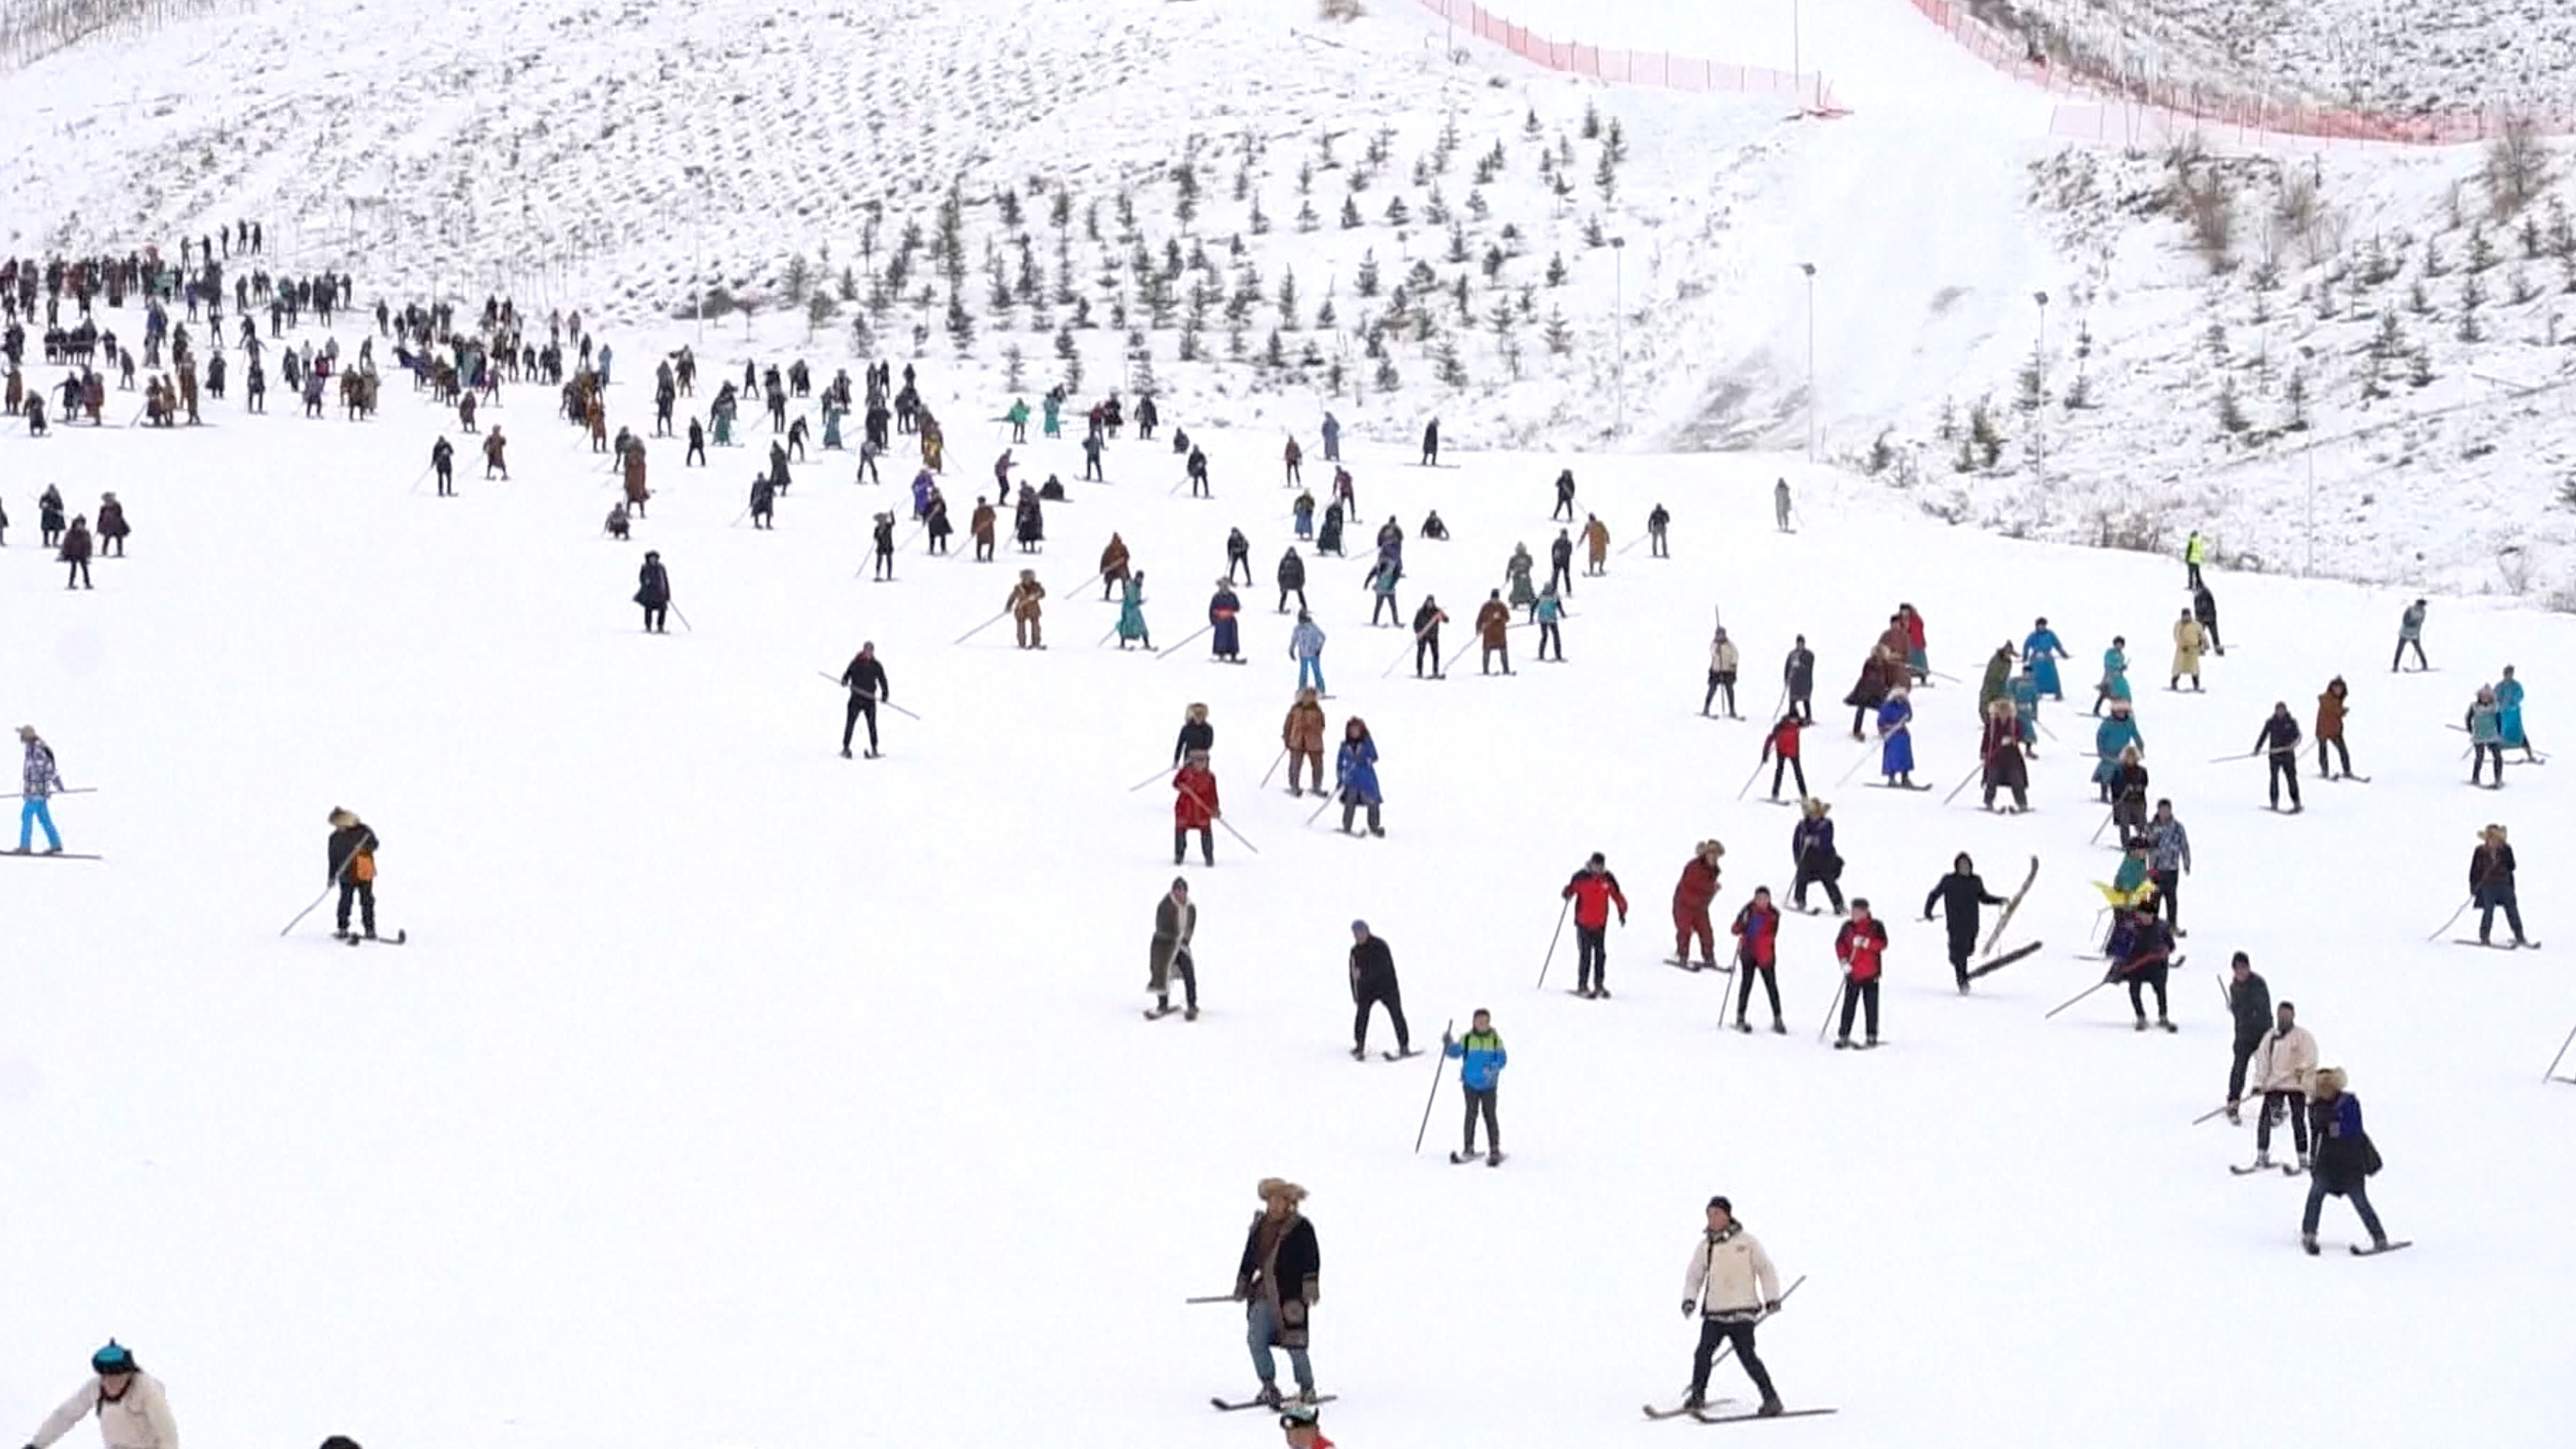 Xinjiang tourism industry gears up for travel boom